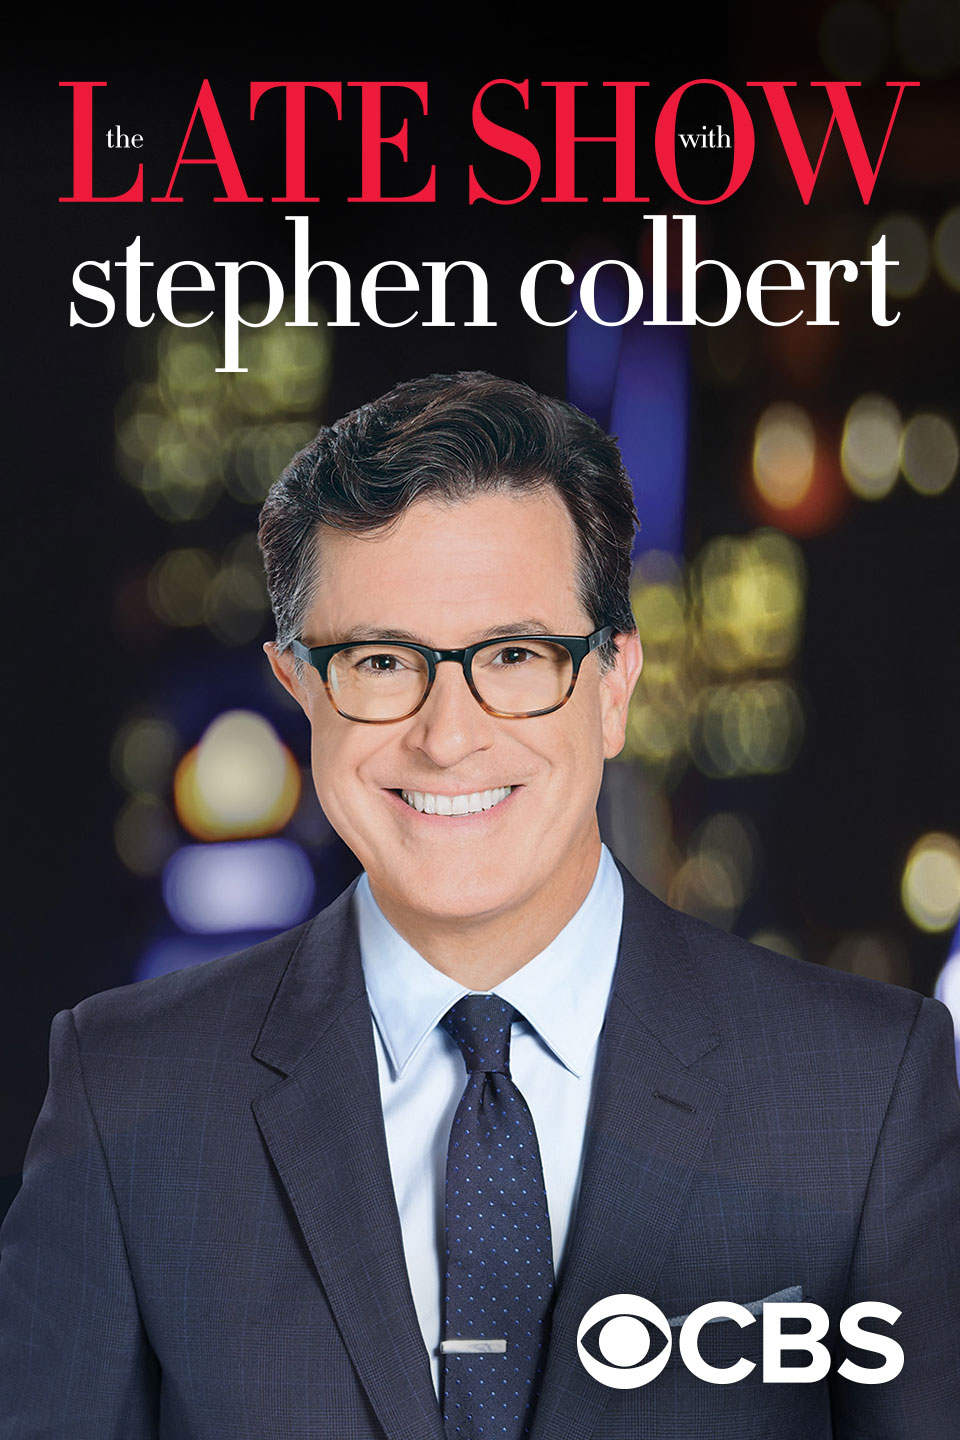 Late Show with Stephen Colbert - Season 7 Episode 29 -  Bill Gates